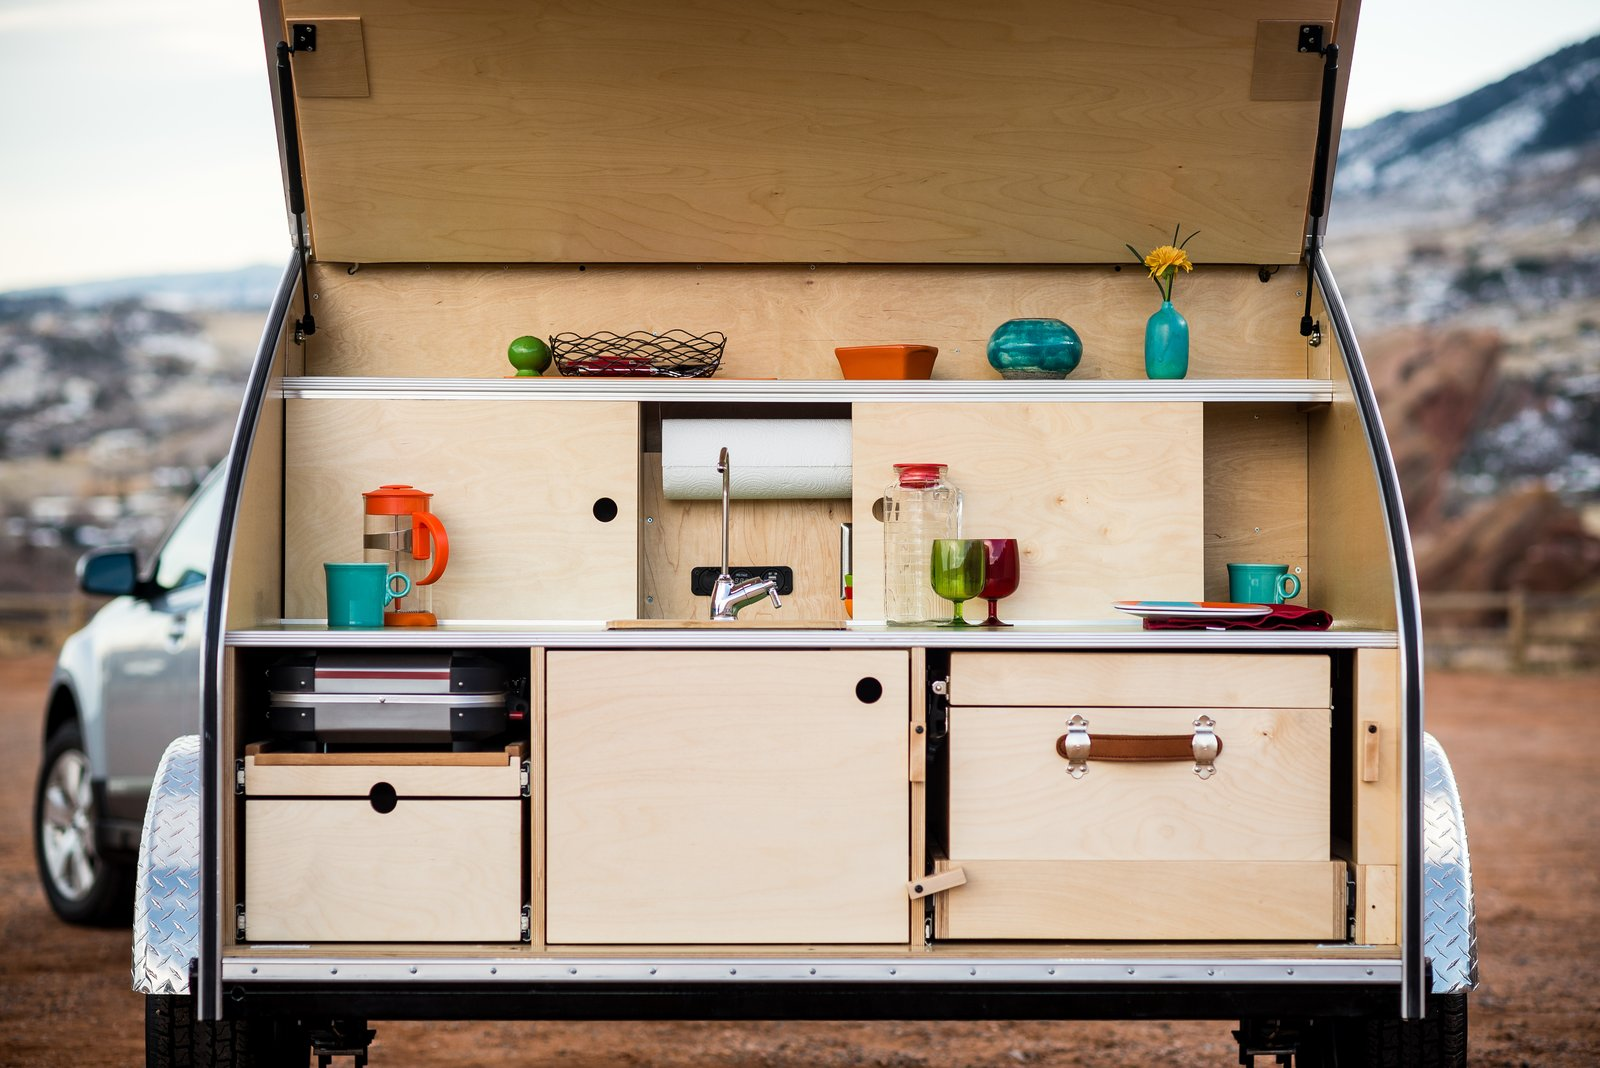 Kitchen, Wood, Drop In, Wood, Wood, and Laminate The galley allows you to cook outdoors in style.  Best Kitchen Wood Wood Wood Photos from Timberleaf Trailers